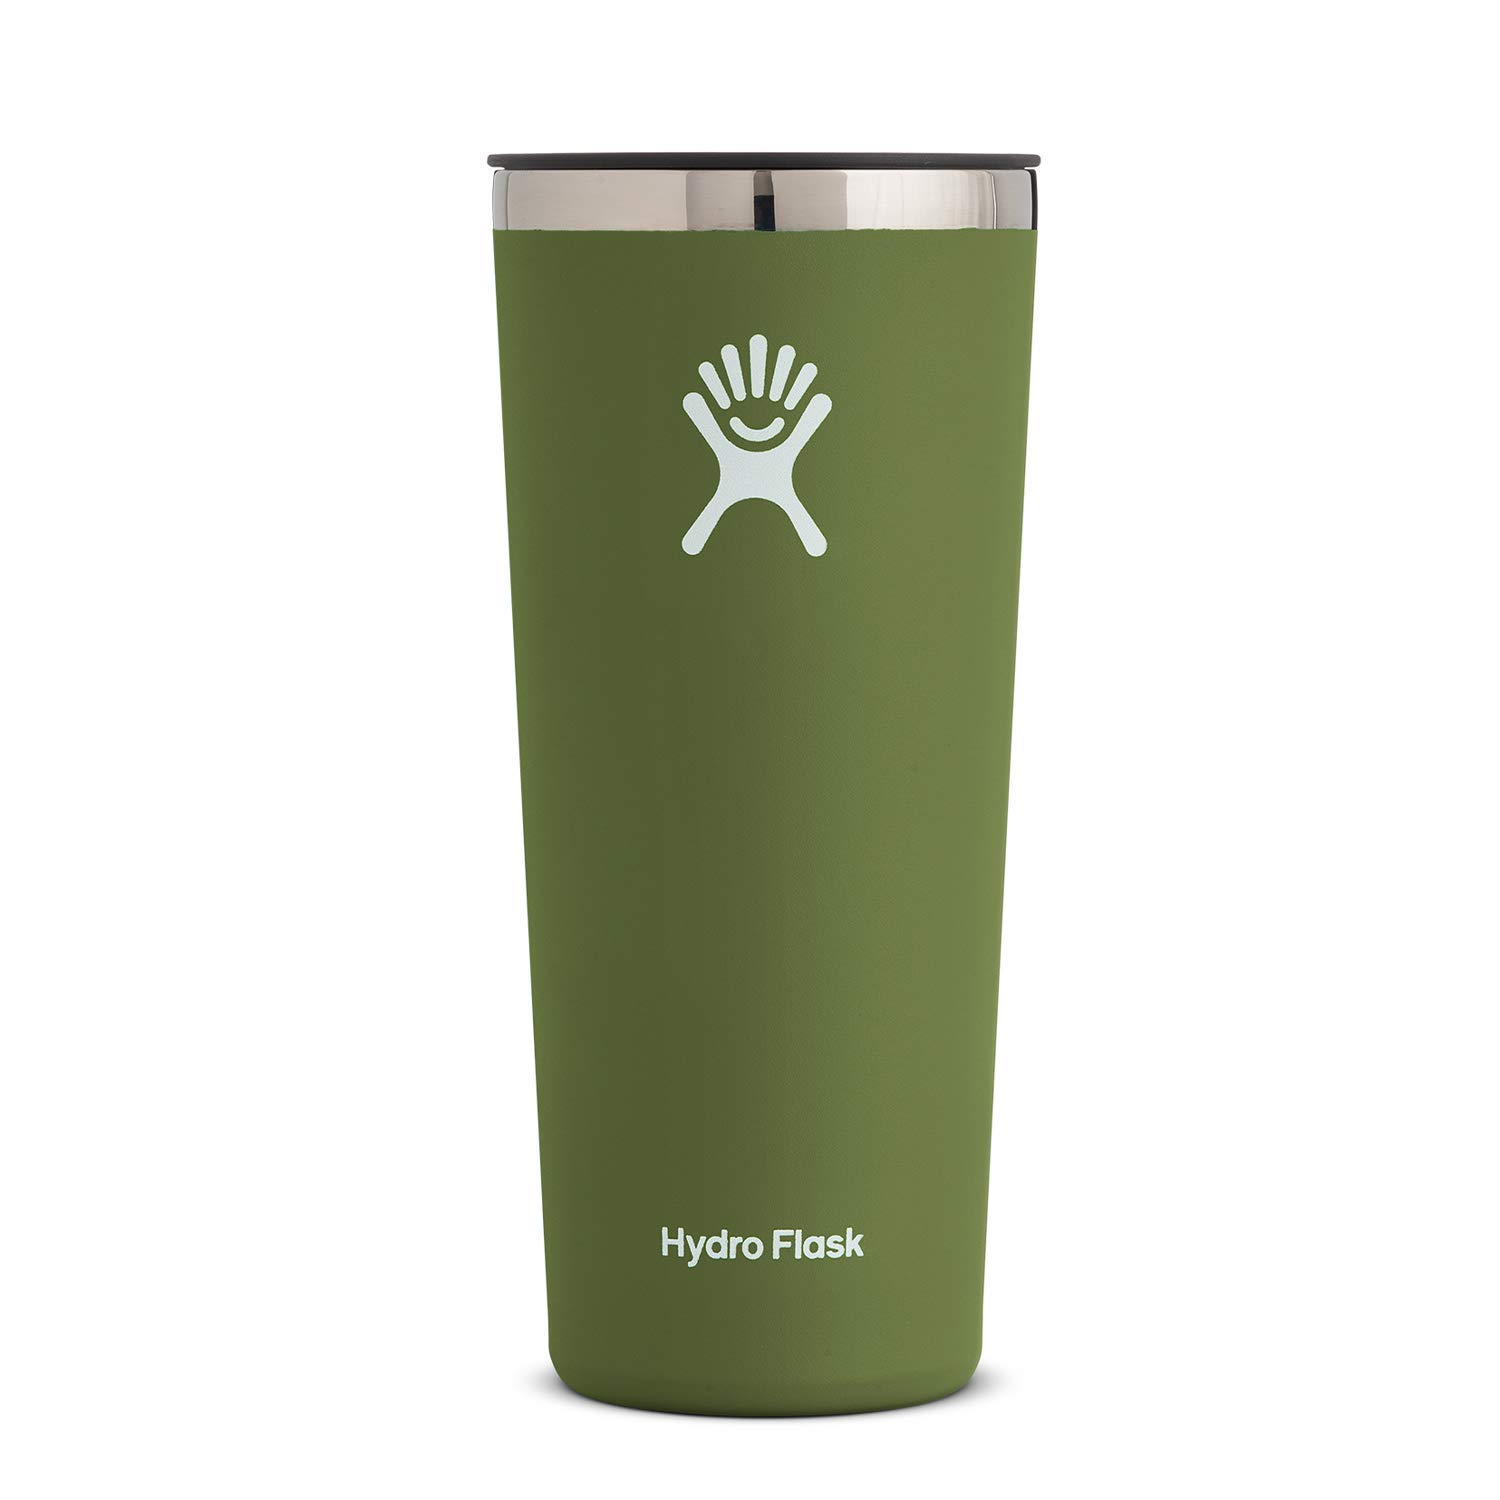 Hydro Flask Tumbler Cup - Stainless Steel & Vacuum Insulated - Press-in Lid - 22 oz, Olive